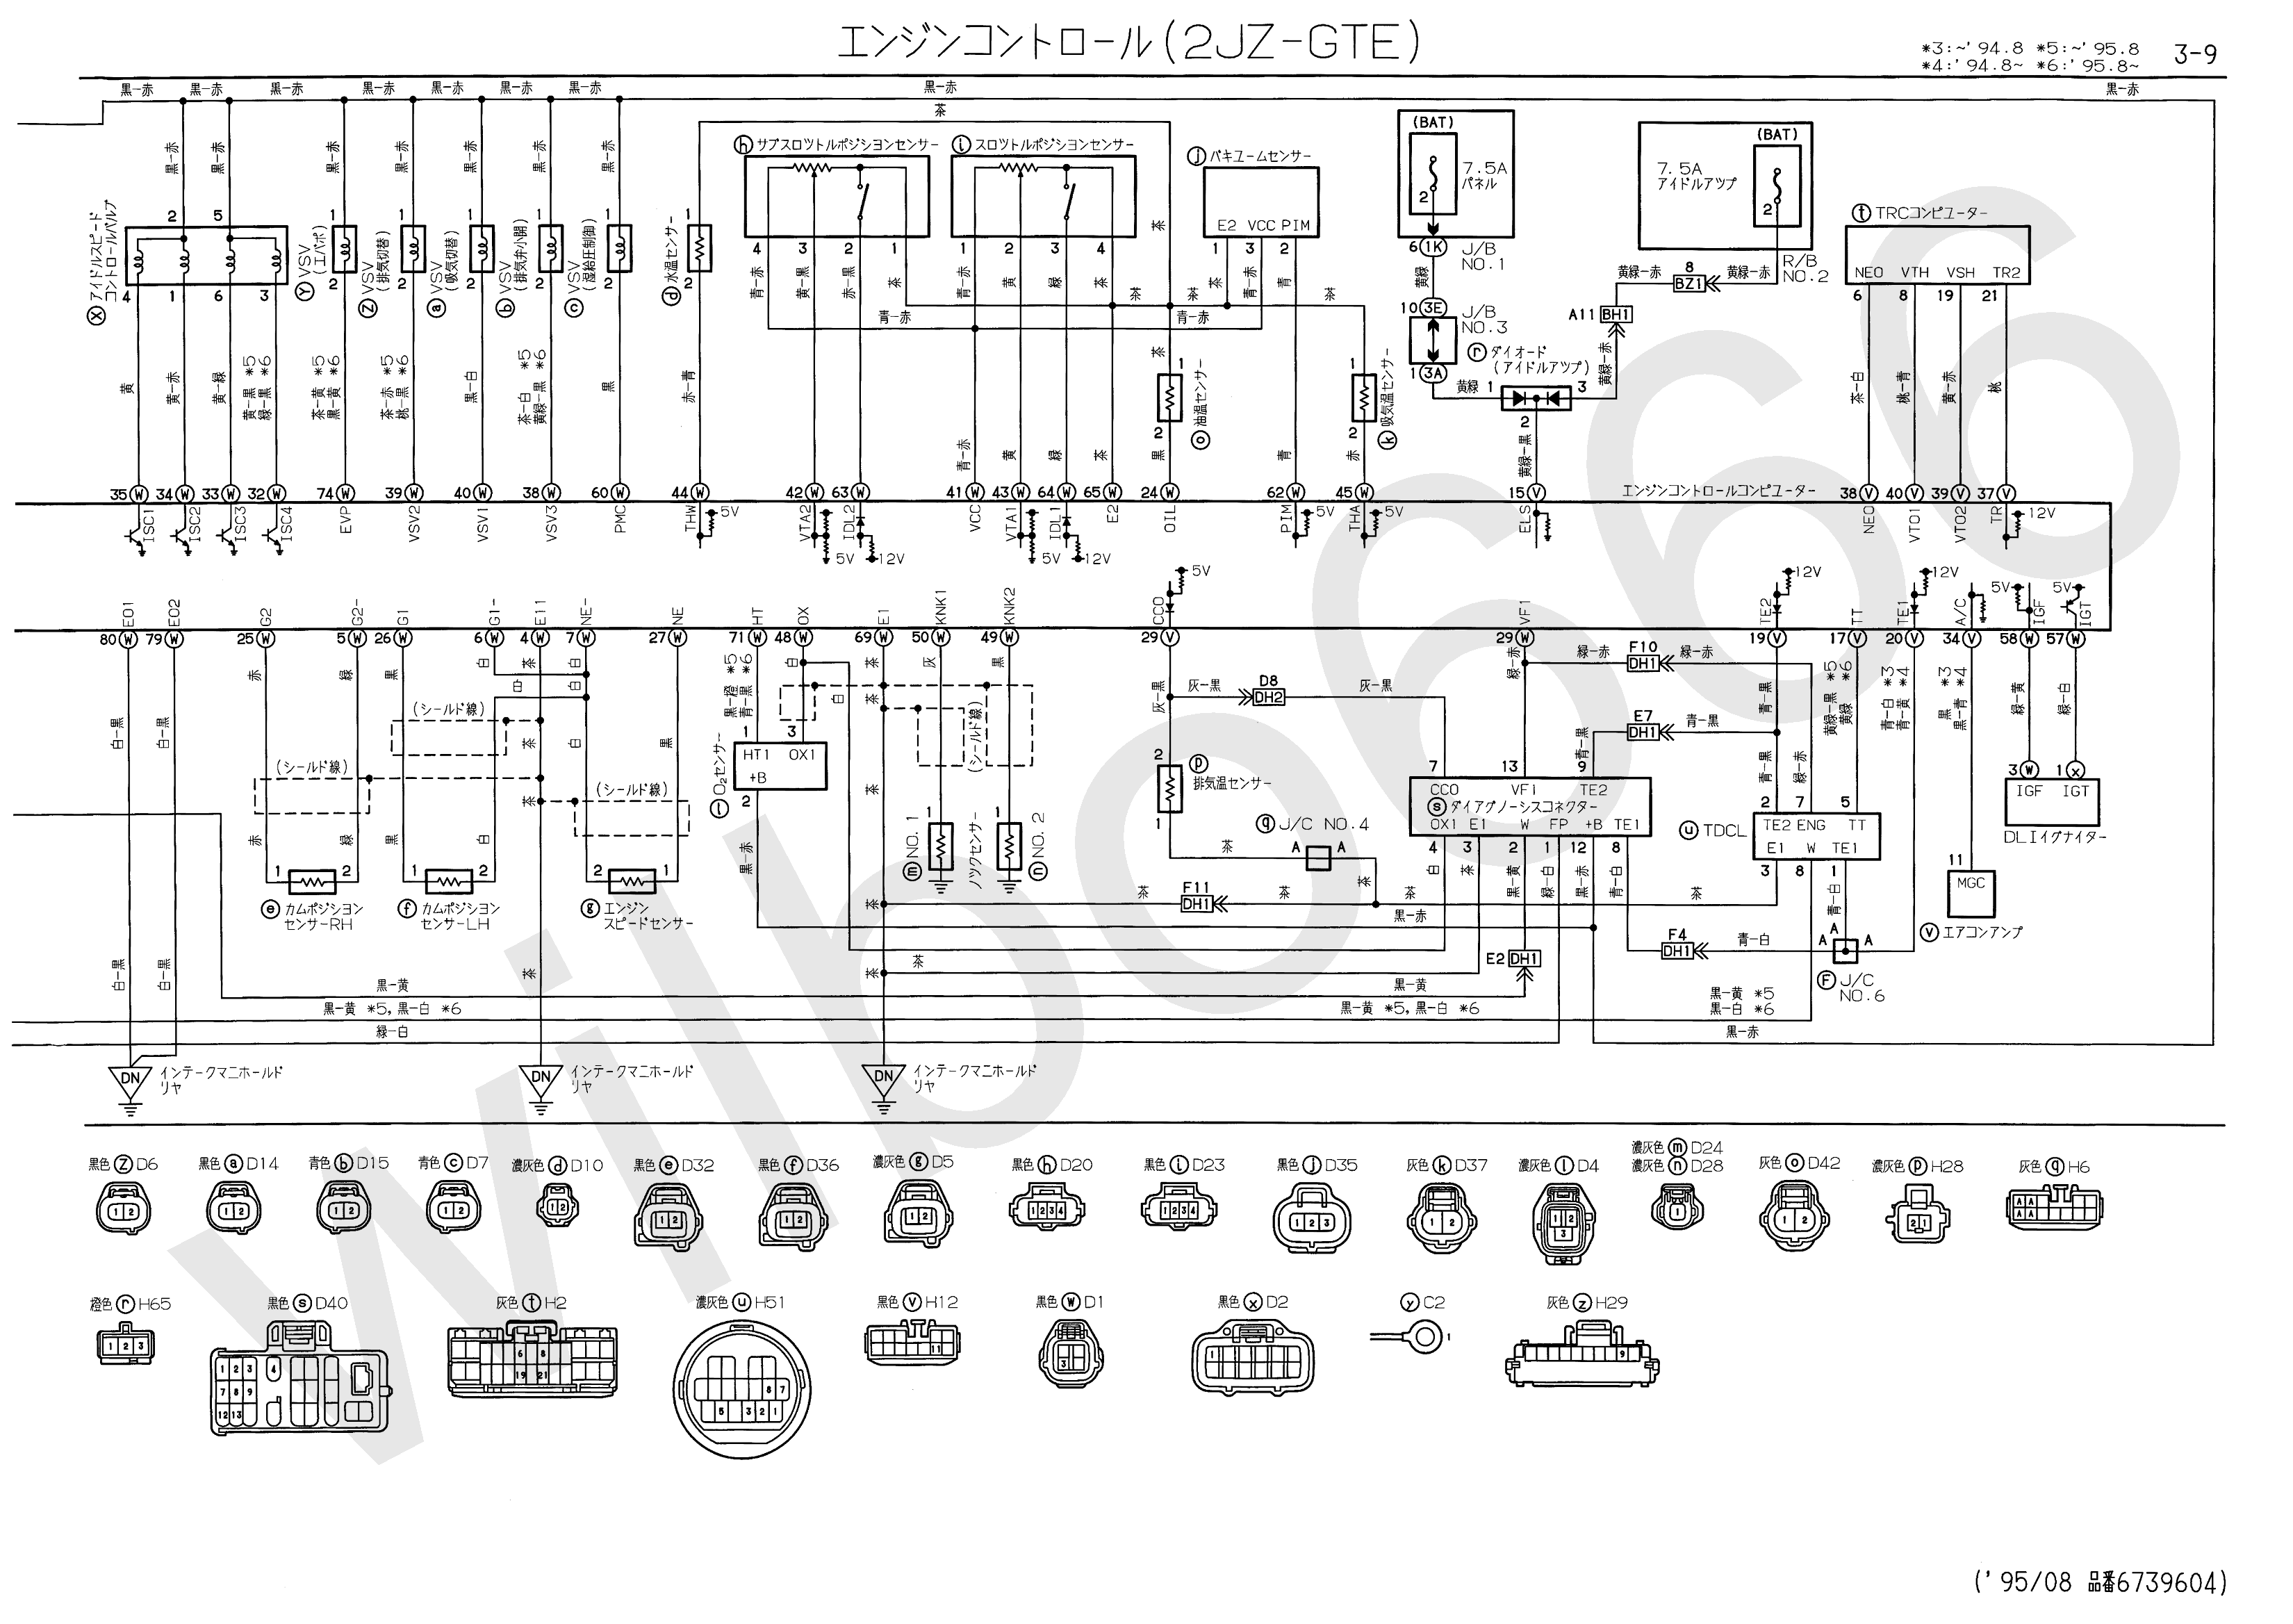 Kia Spectra Fuse Box Diagram Wiring Schematic